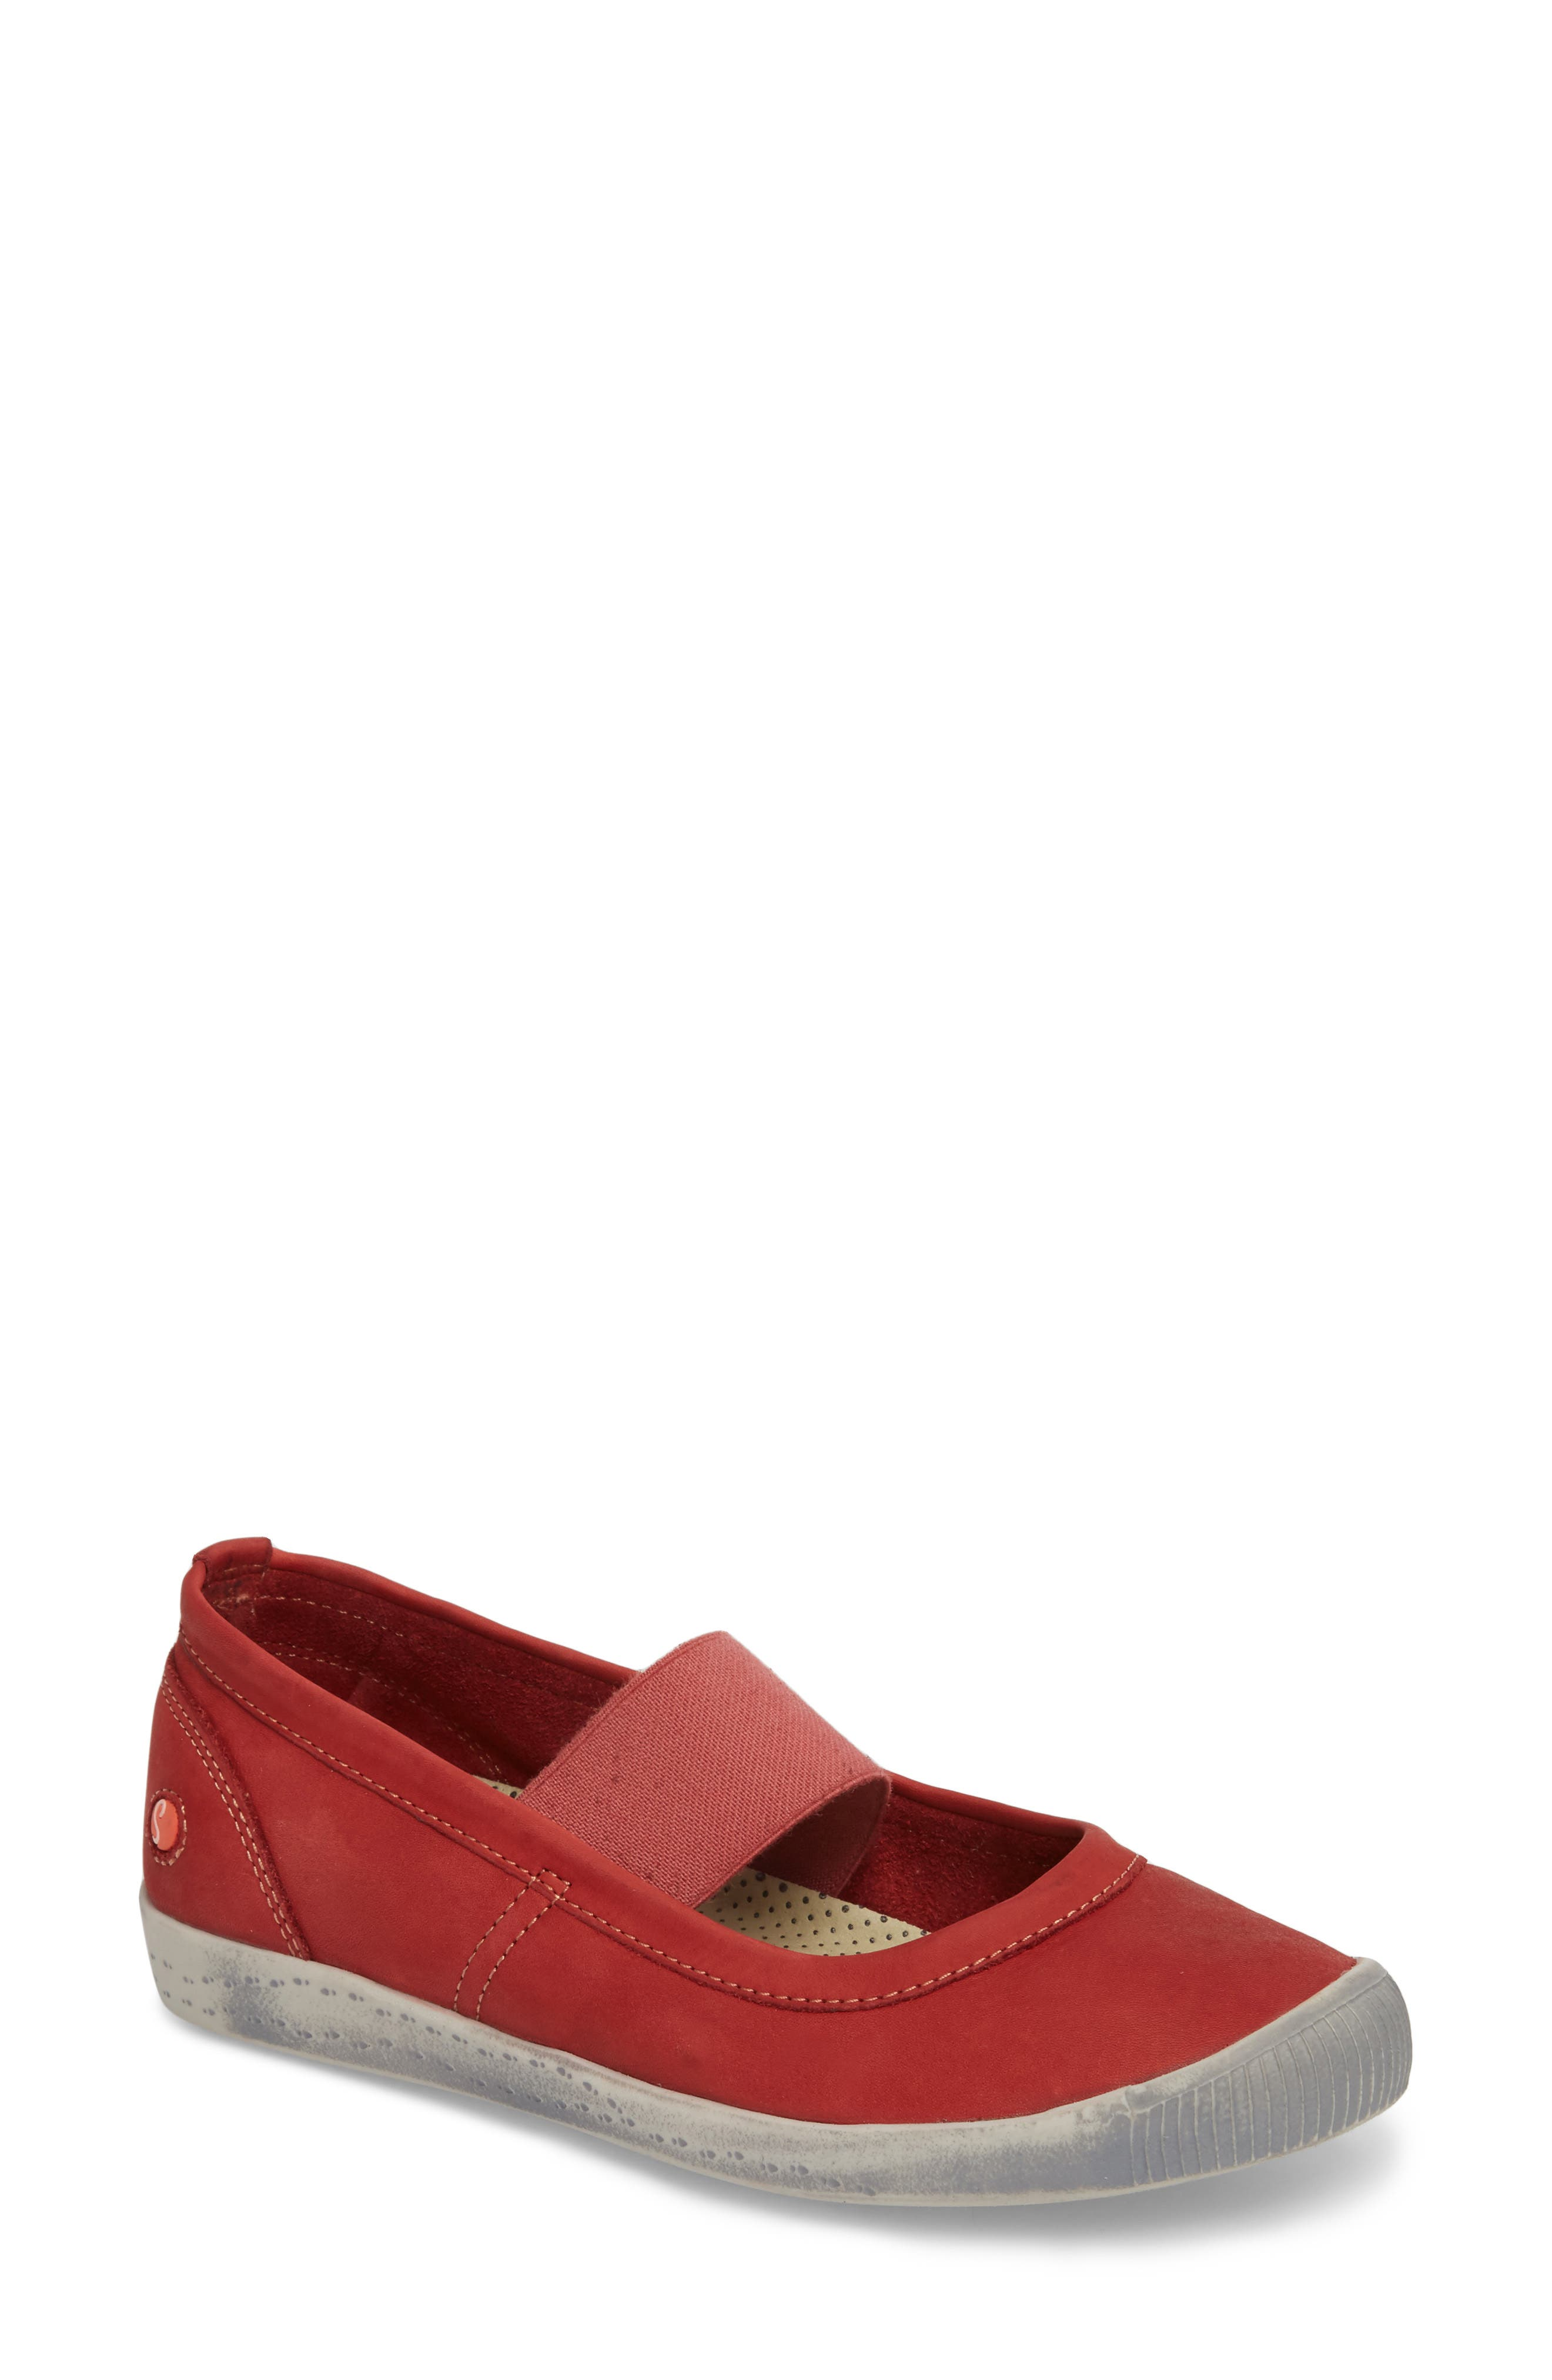 Ion Mary Jane Sneaker,                         Main,                         color, Red Leather